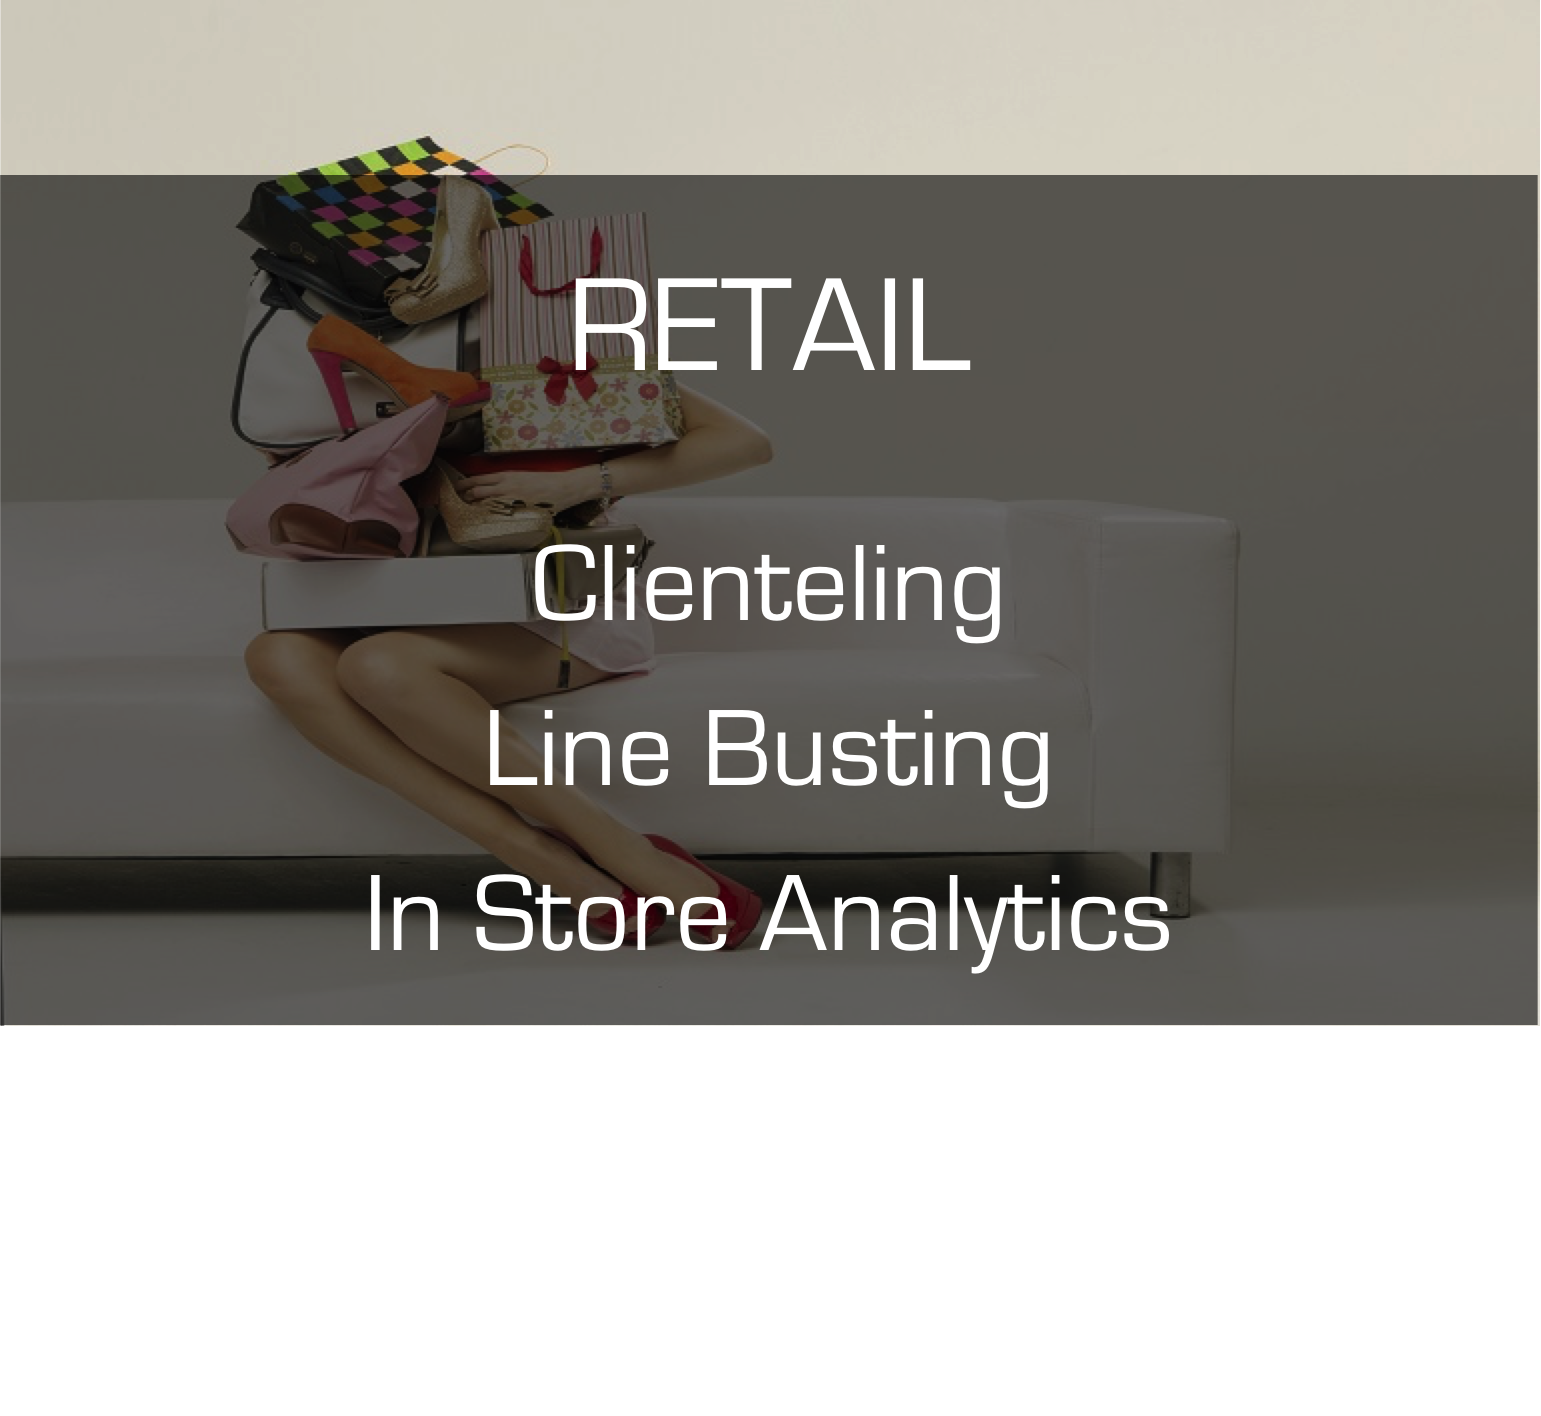 Retail Menu - Clientelingn Line Busting, In Store Analytics